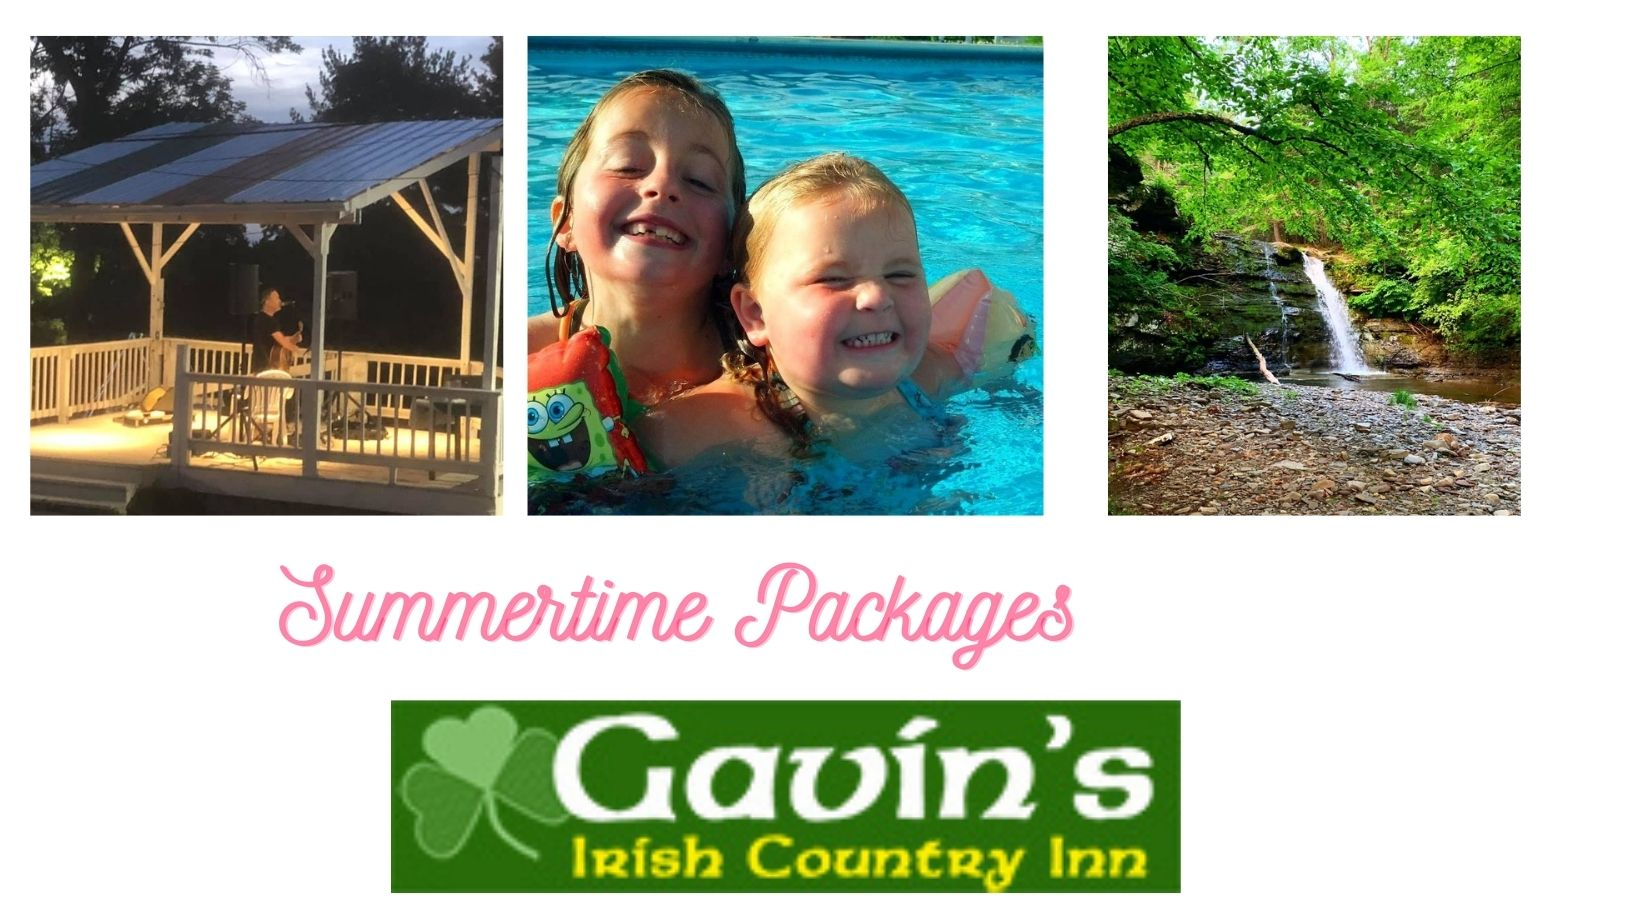 Super Value Midweek Package starting at only $99 per adult per night based on double occupancy...kids stay for FREE!